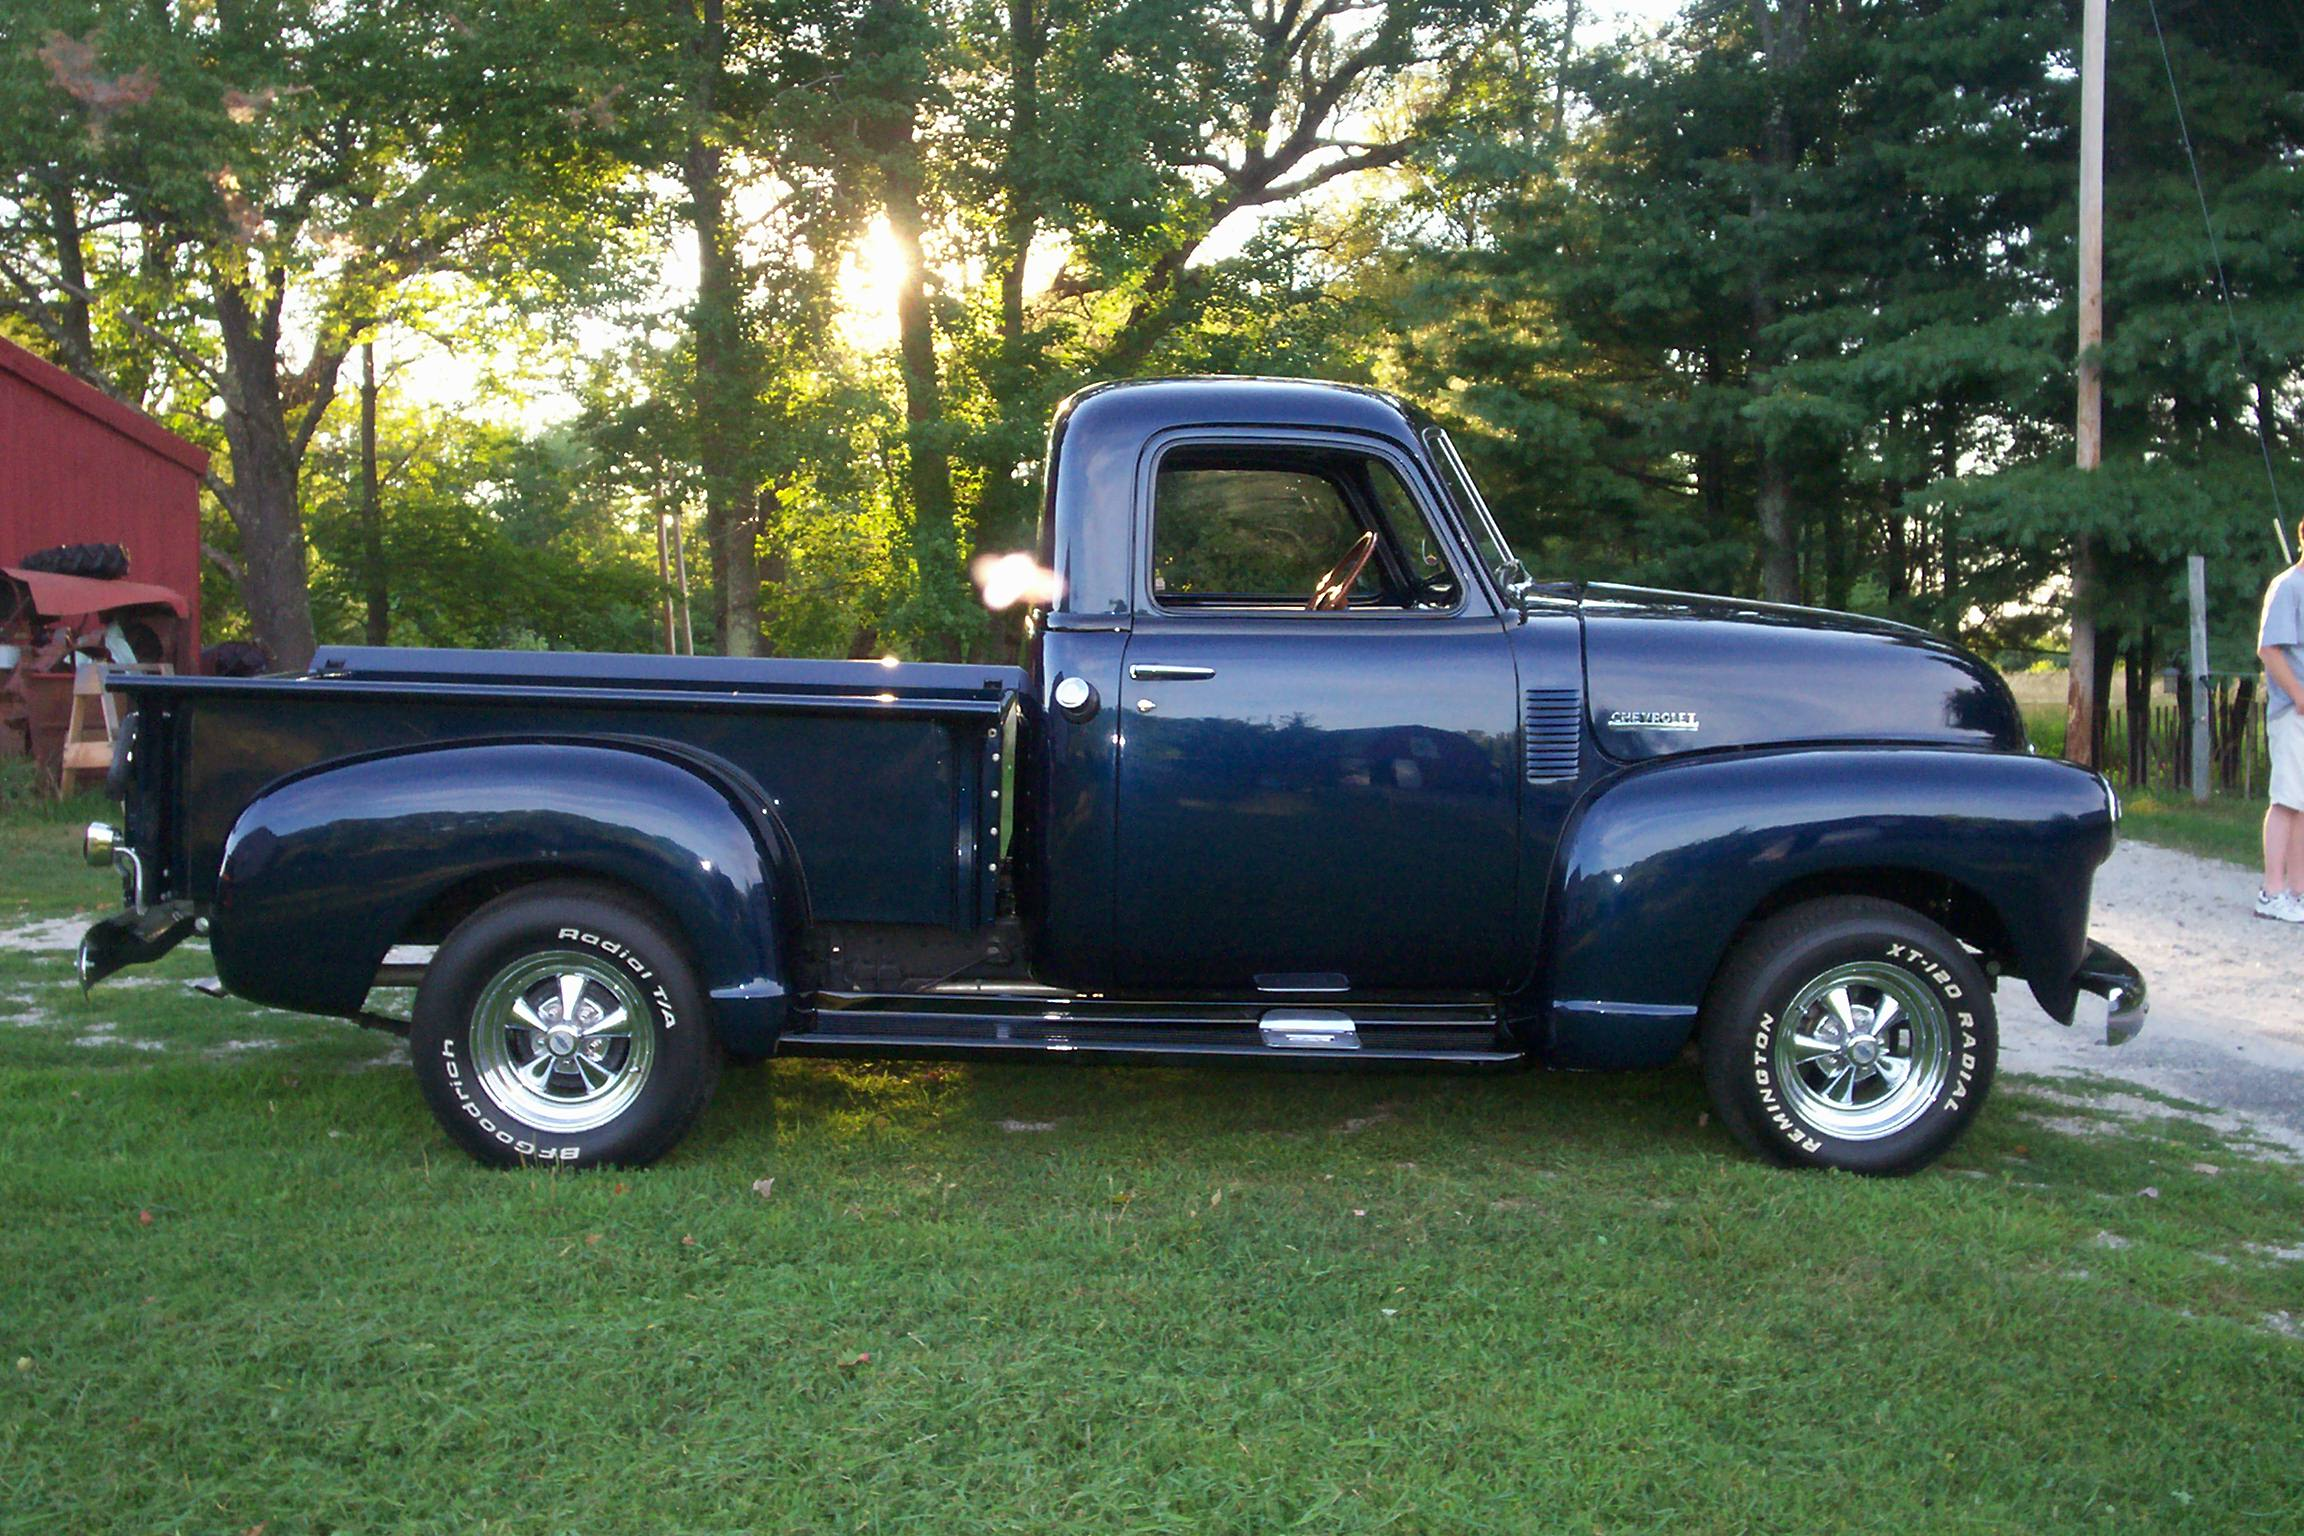 1950 chevy truck completed restoraton blue with belting painted